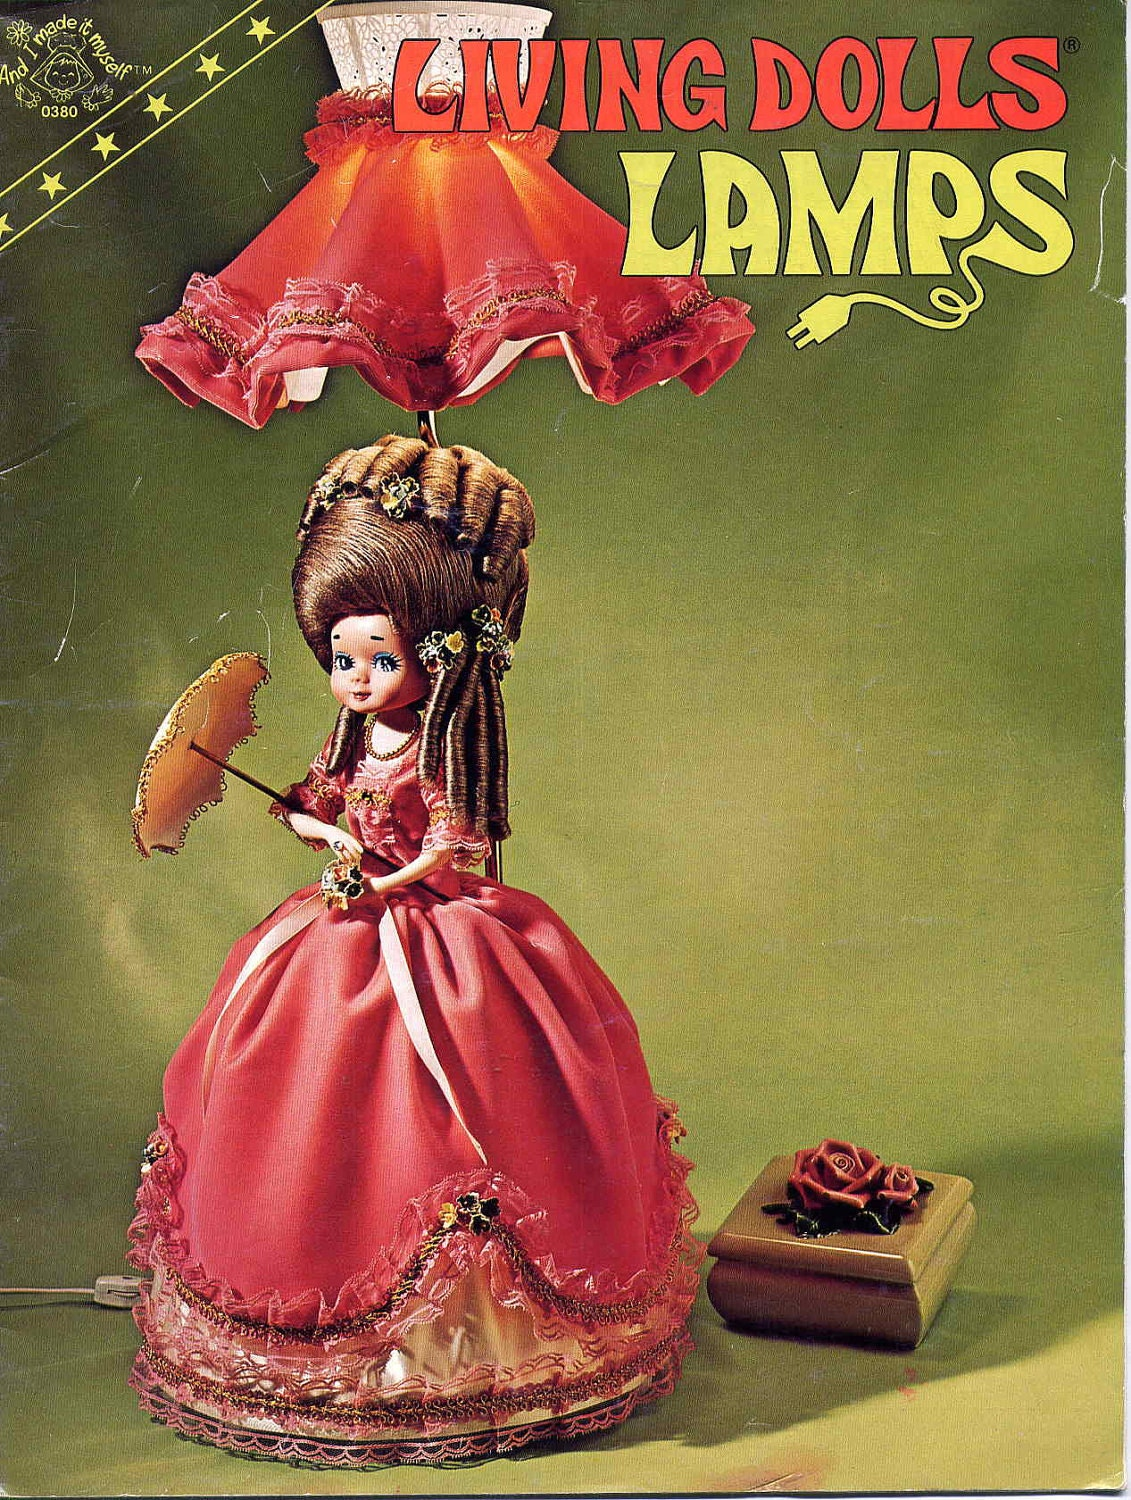 Vintage 1970s Living Dolls Lamps Craft Bookmake Your Own